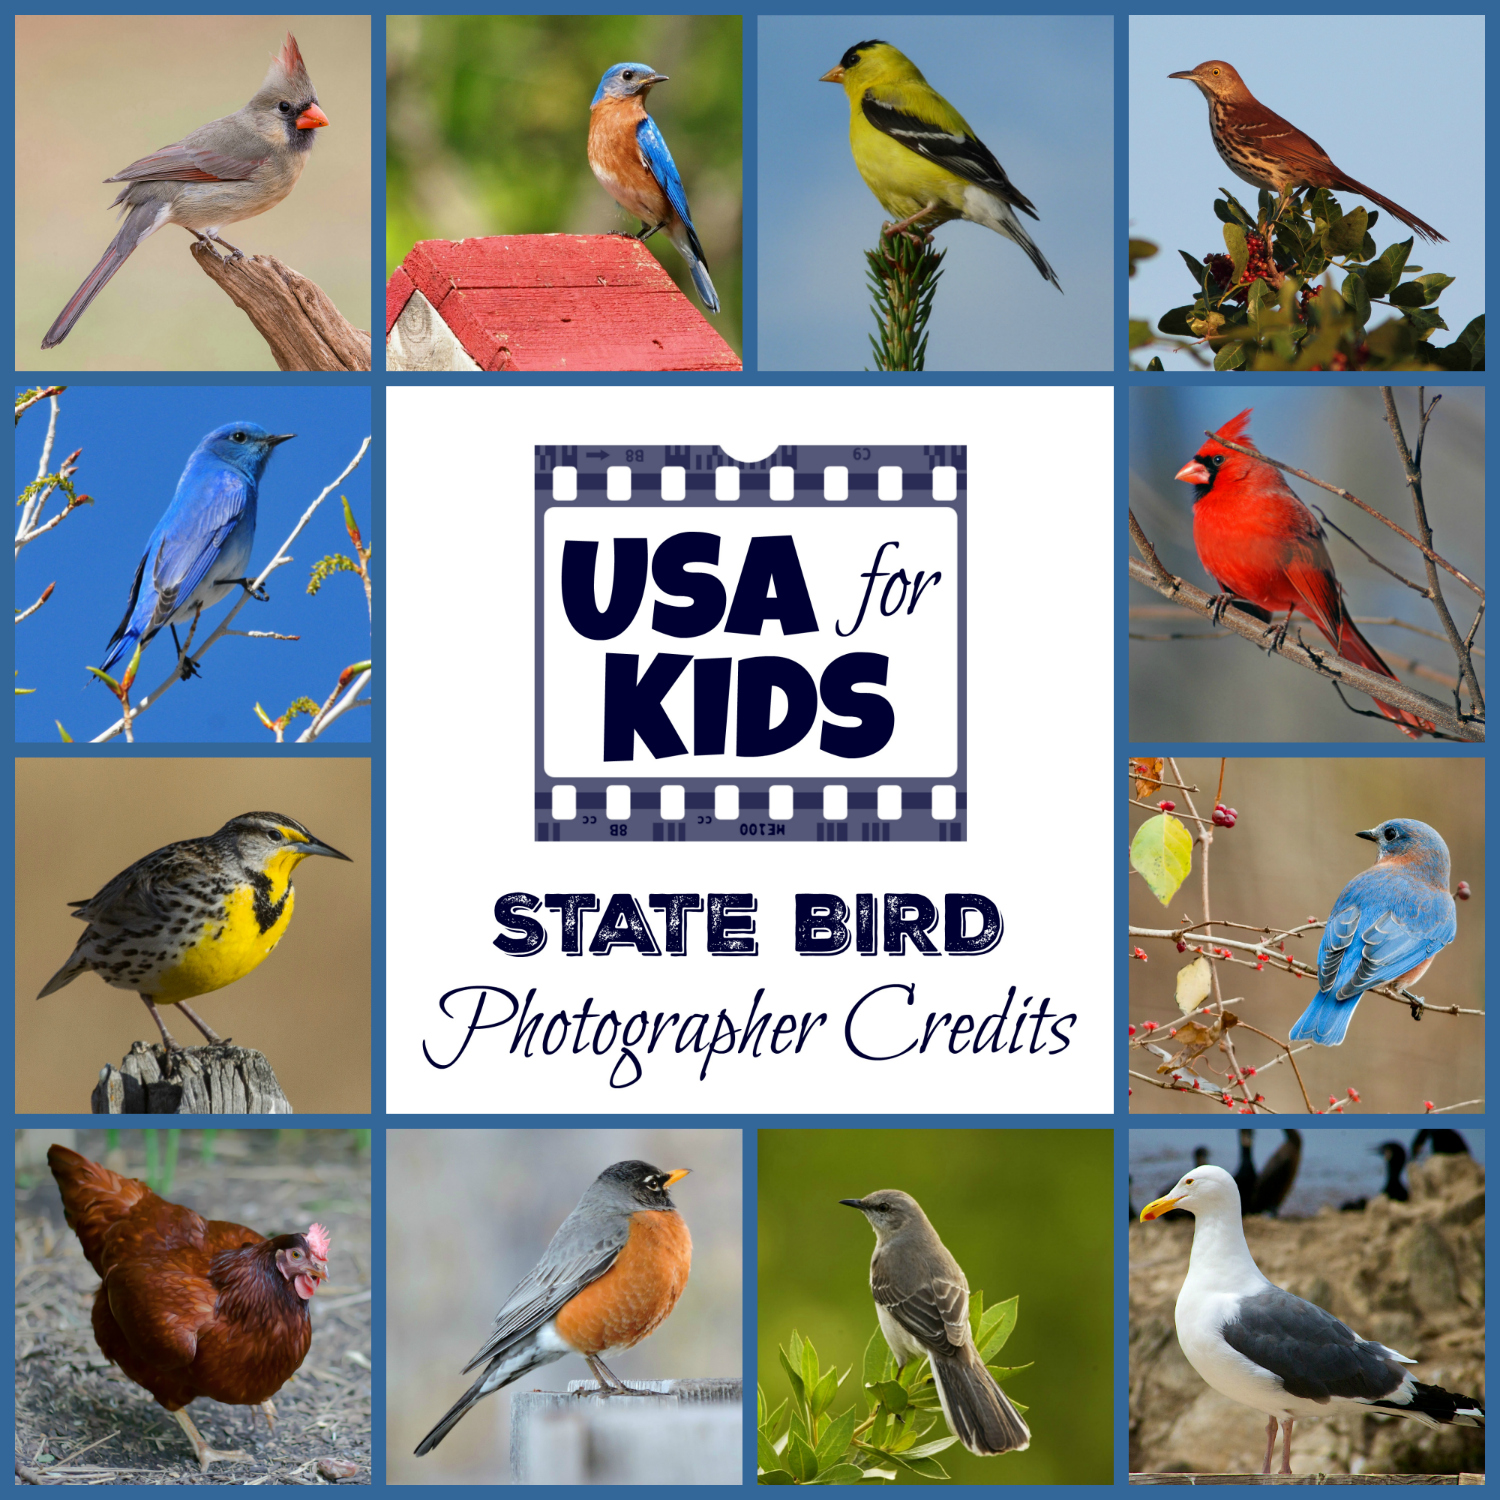 State Bird Photo Credits